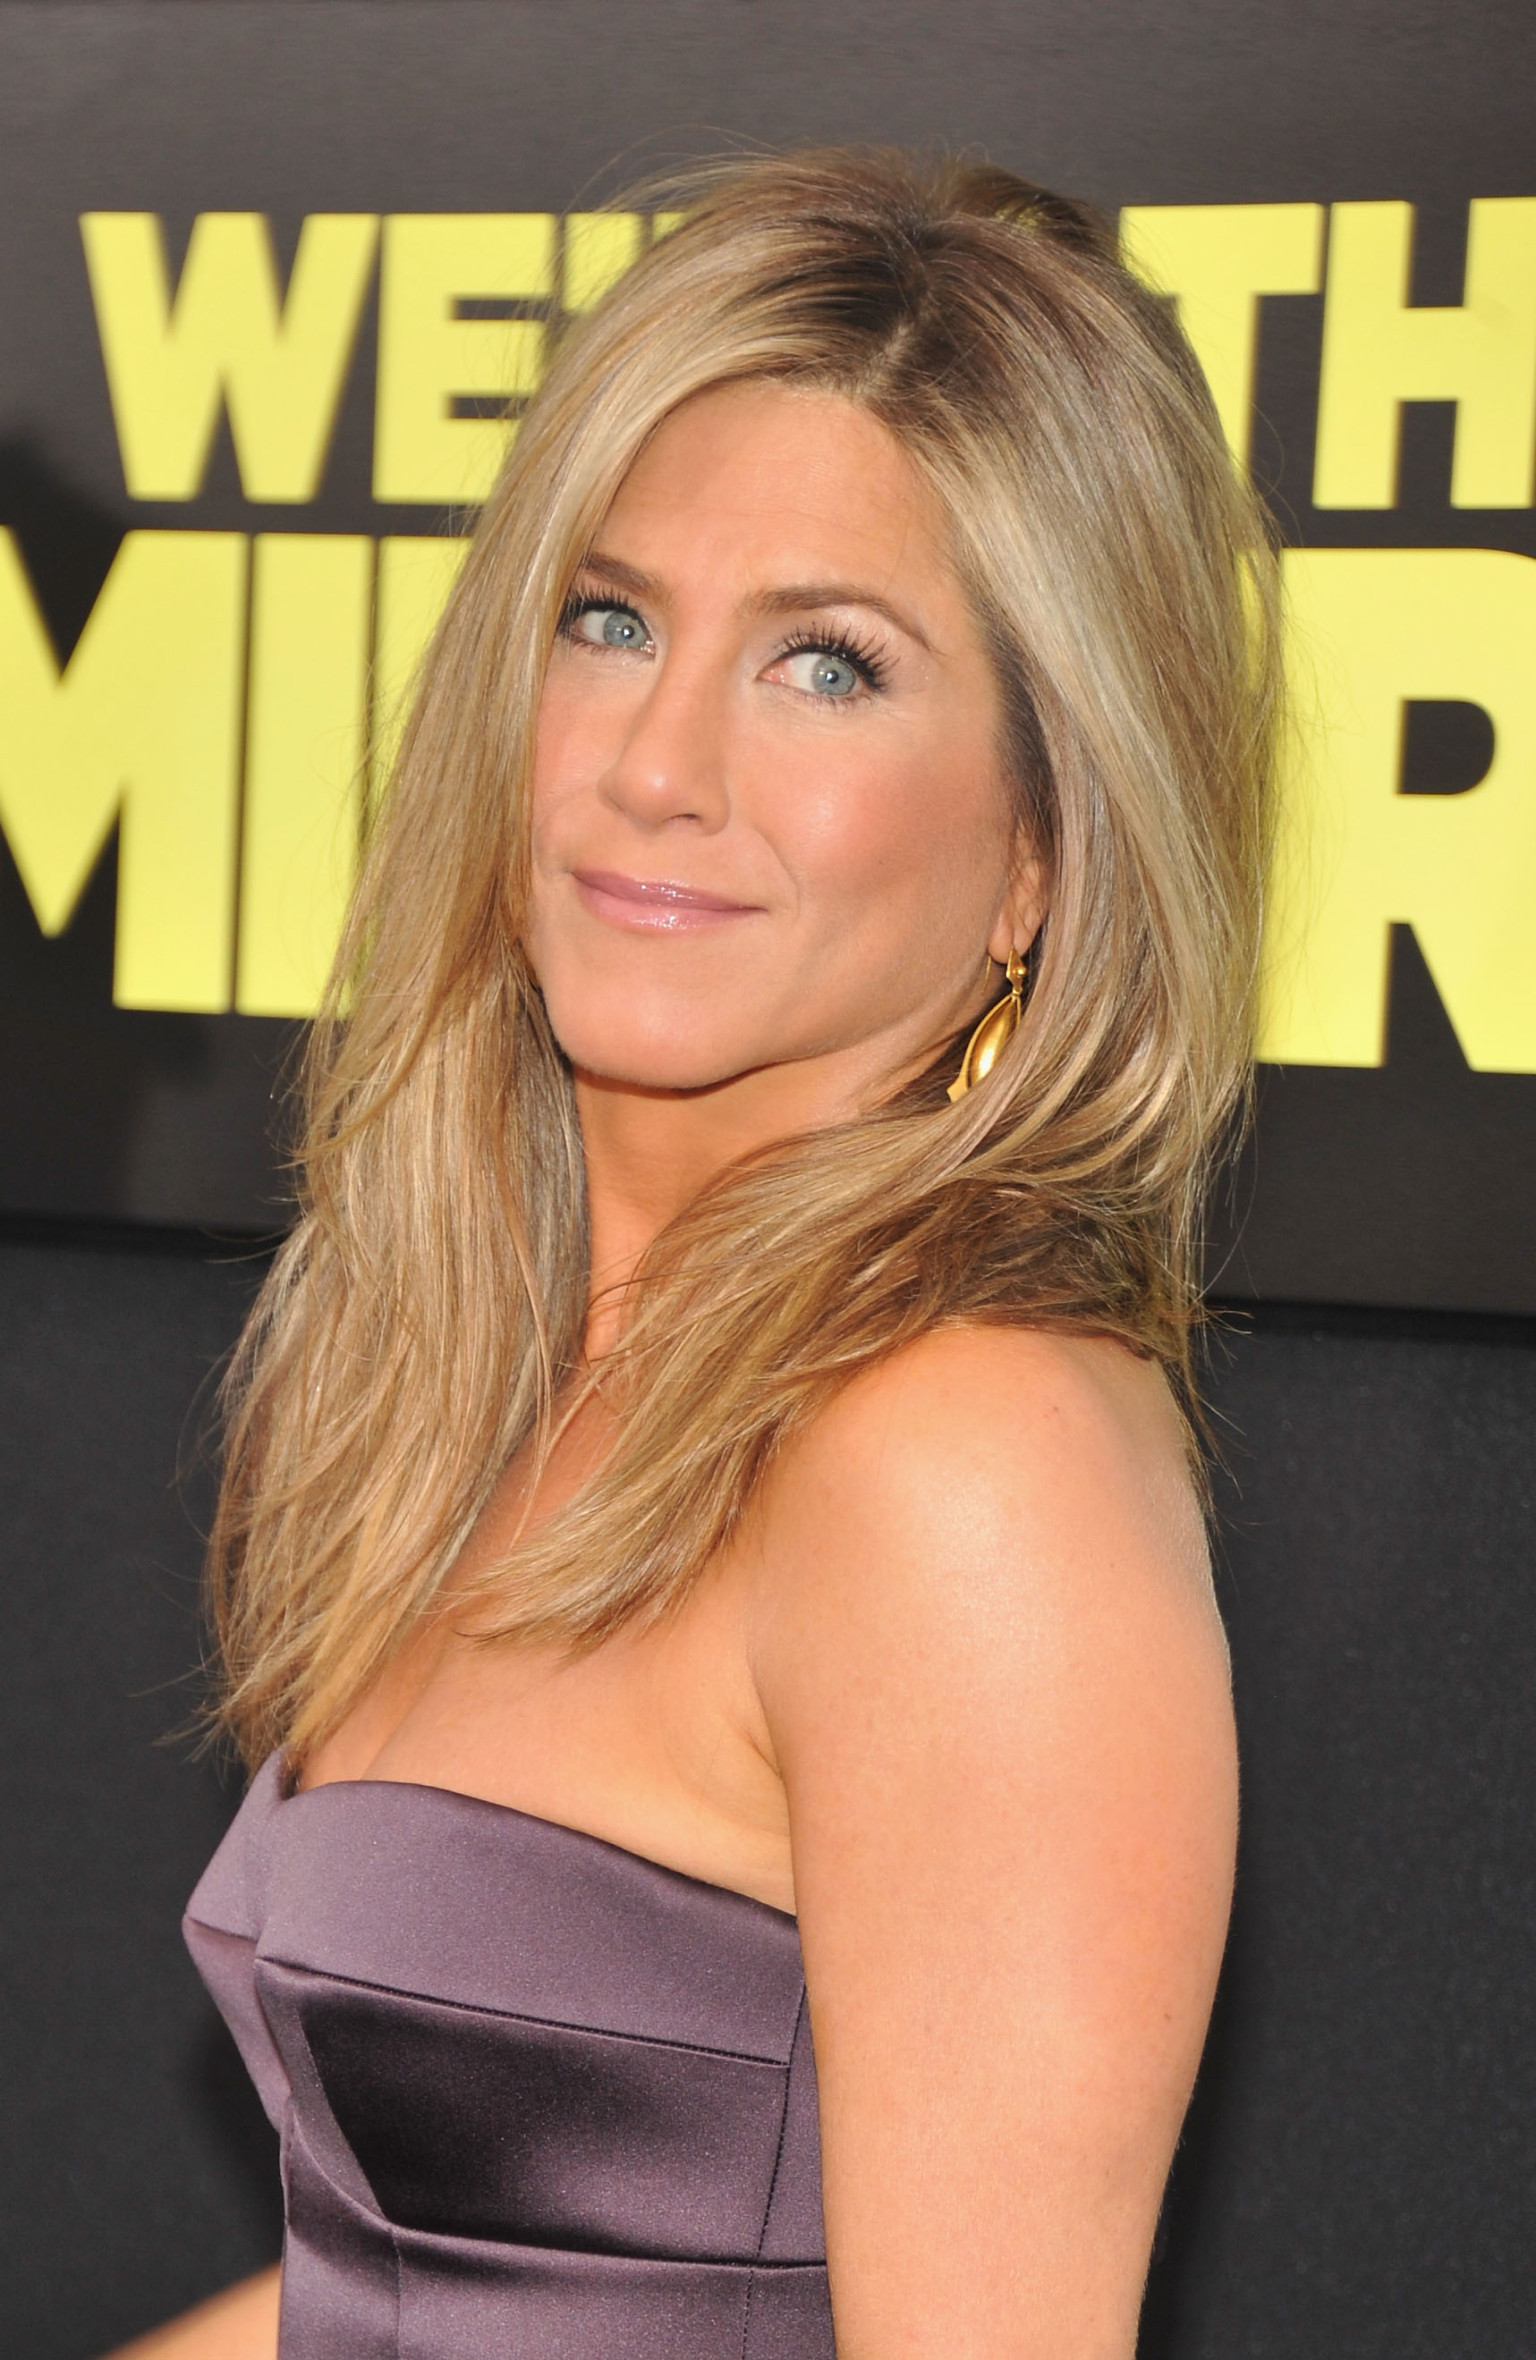 Jennifer Aniston Is Stunning With No Makeup In New